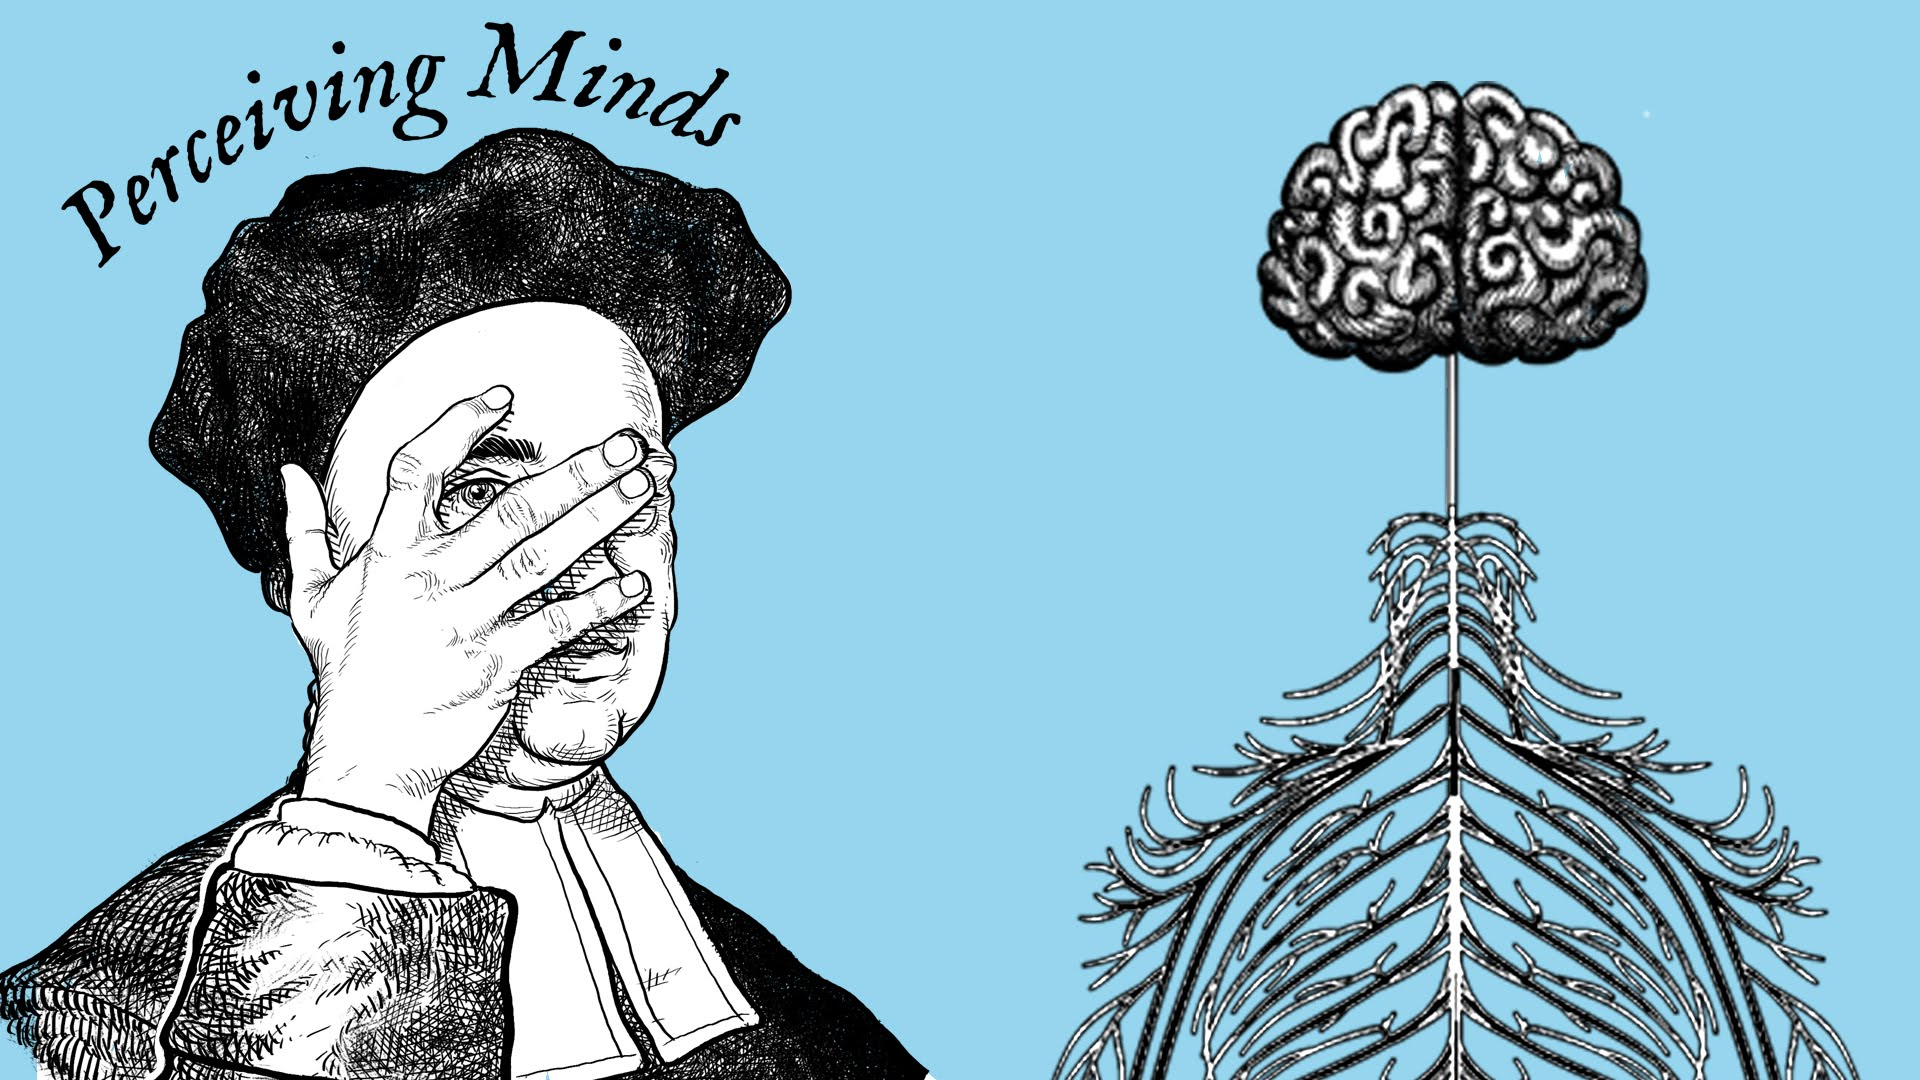 How Can I Know Anything at All? BBC Animations Feature the Philosophy of Wittgenstein, Hume, Popper & More